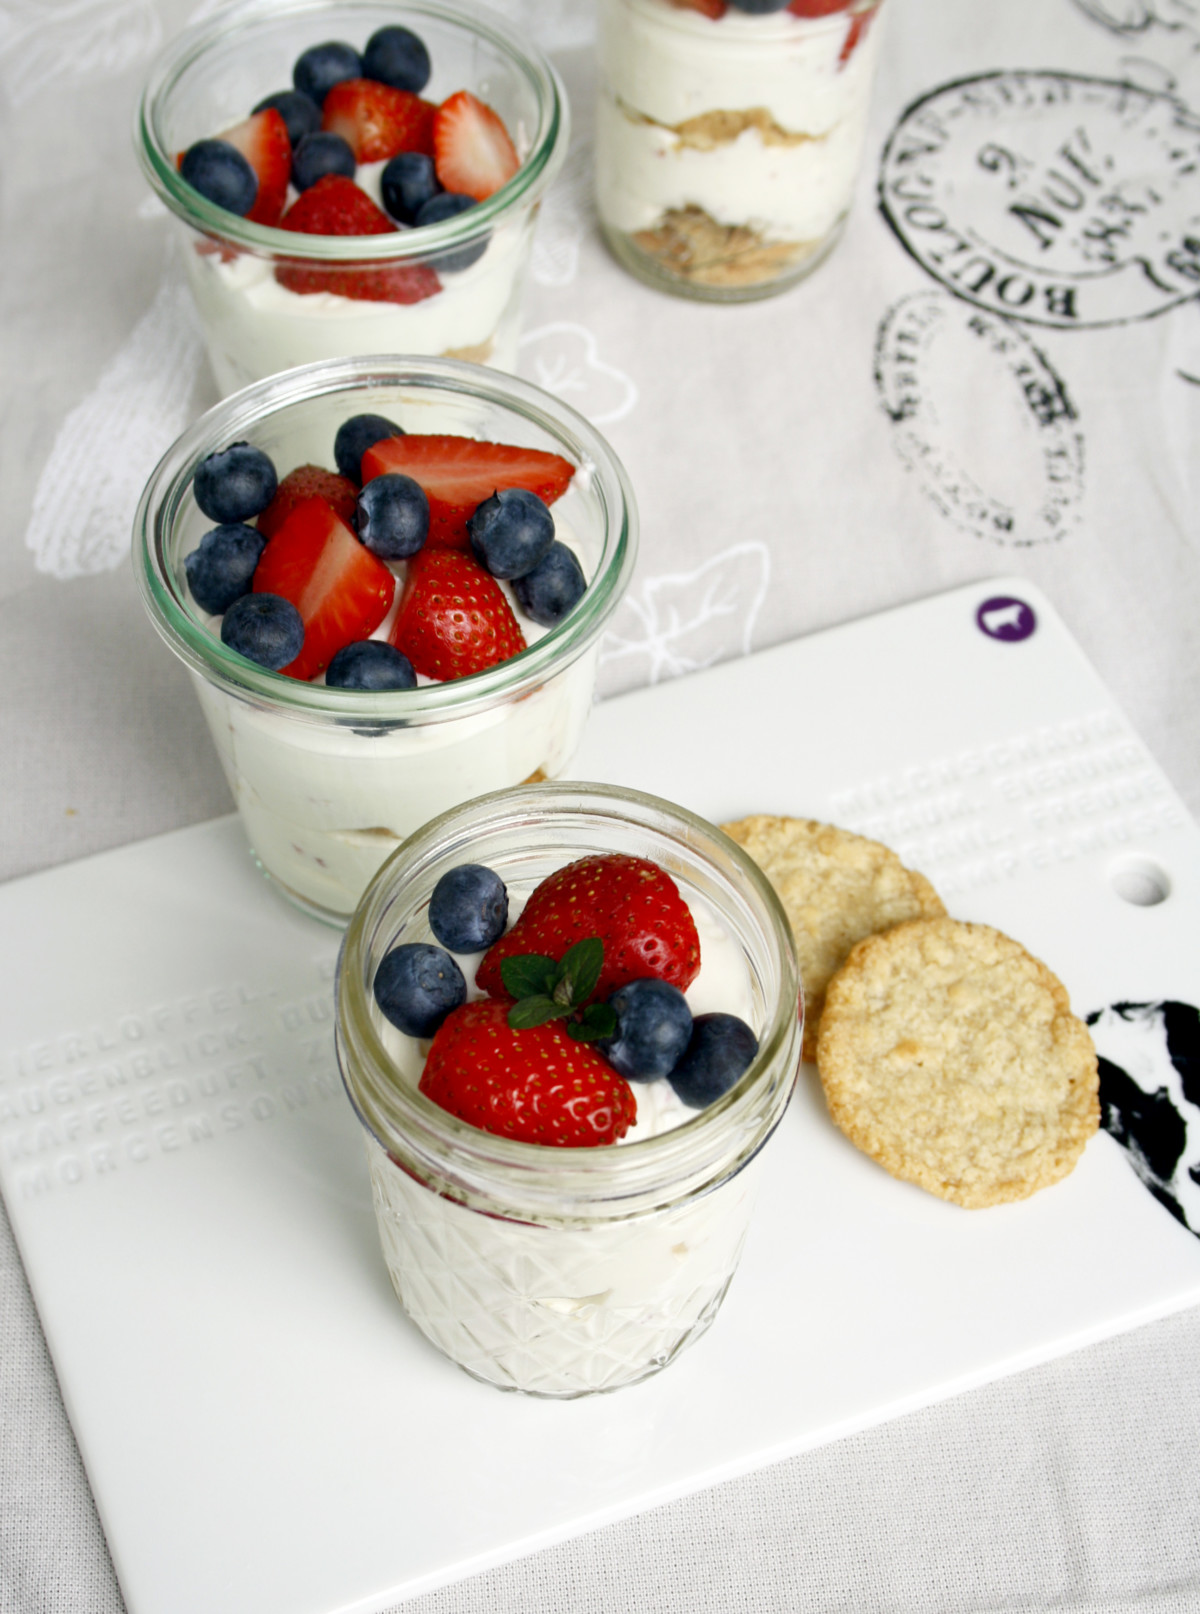 Quark mit frischen Beeren // Fresh dessert with fruits and berries by http://babyrockmyday.com/quark-mit-beeren/